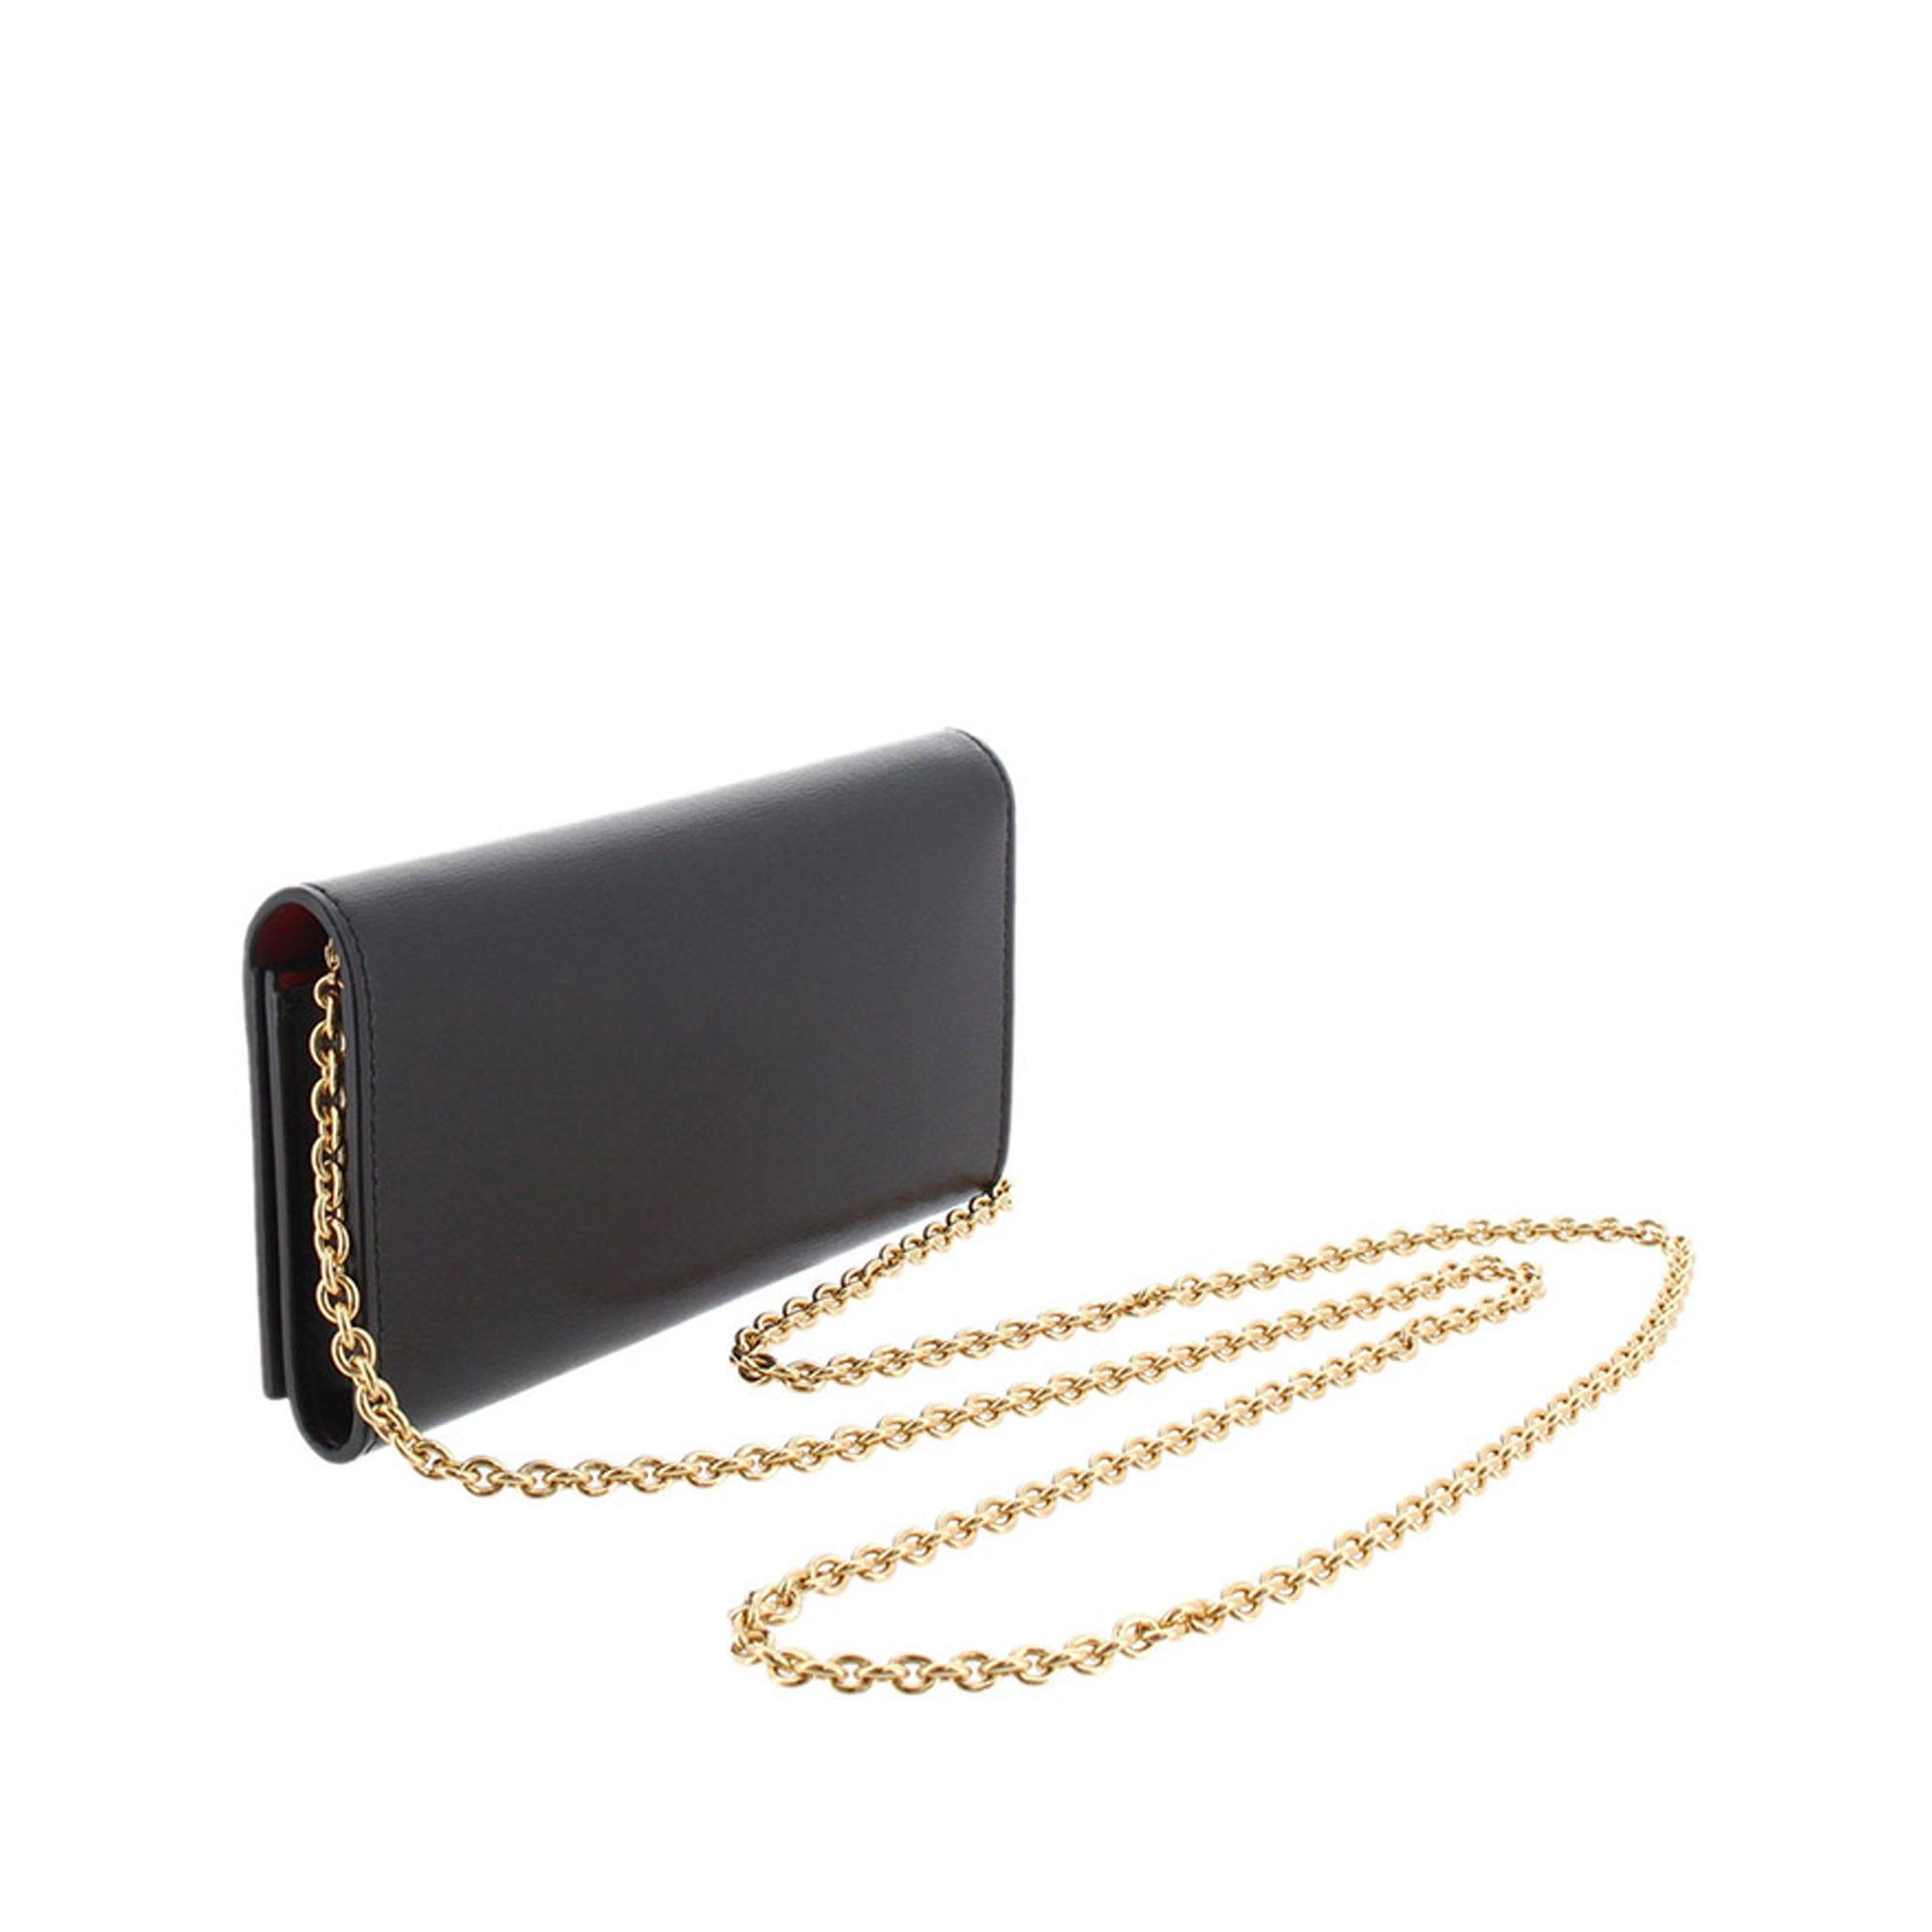 Ferragamo Black Gancini Leather Wallet On Chain